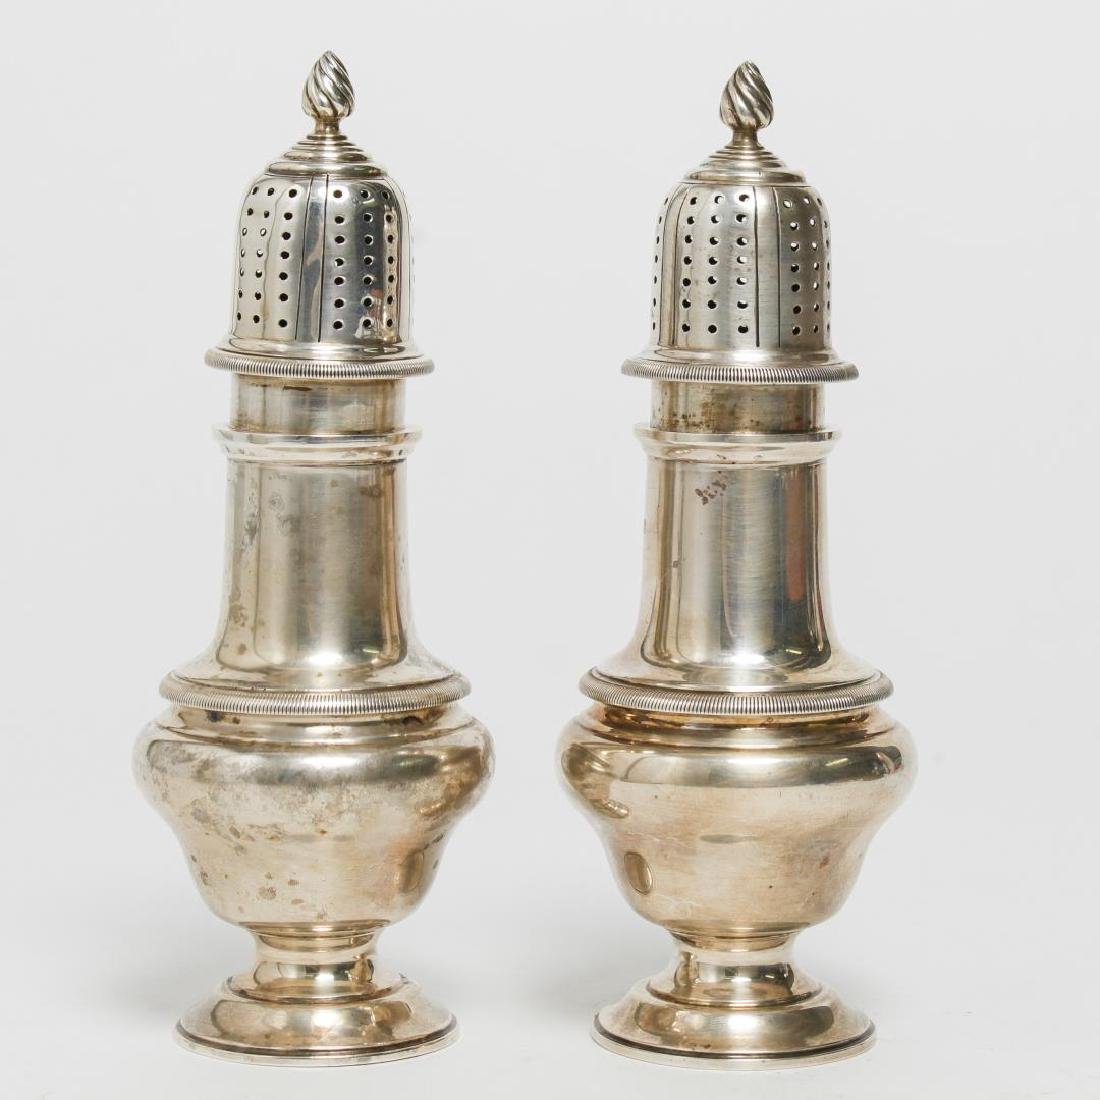 Silver Sugar Casters or Shakers, Vintage 1920s - 2